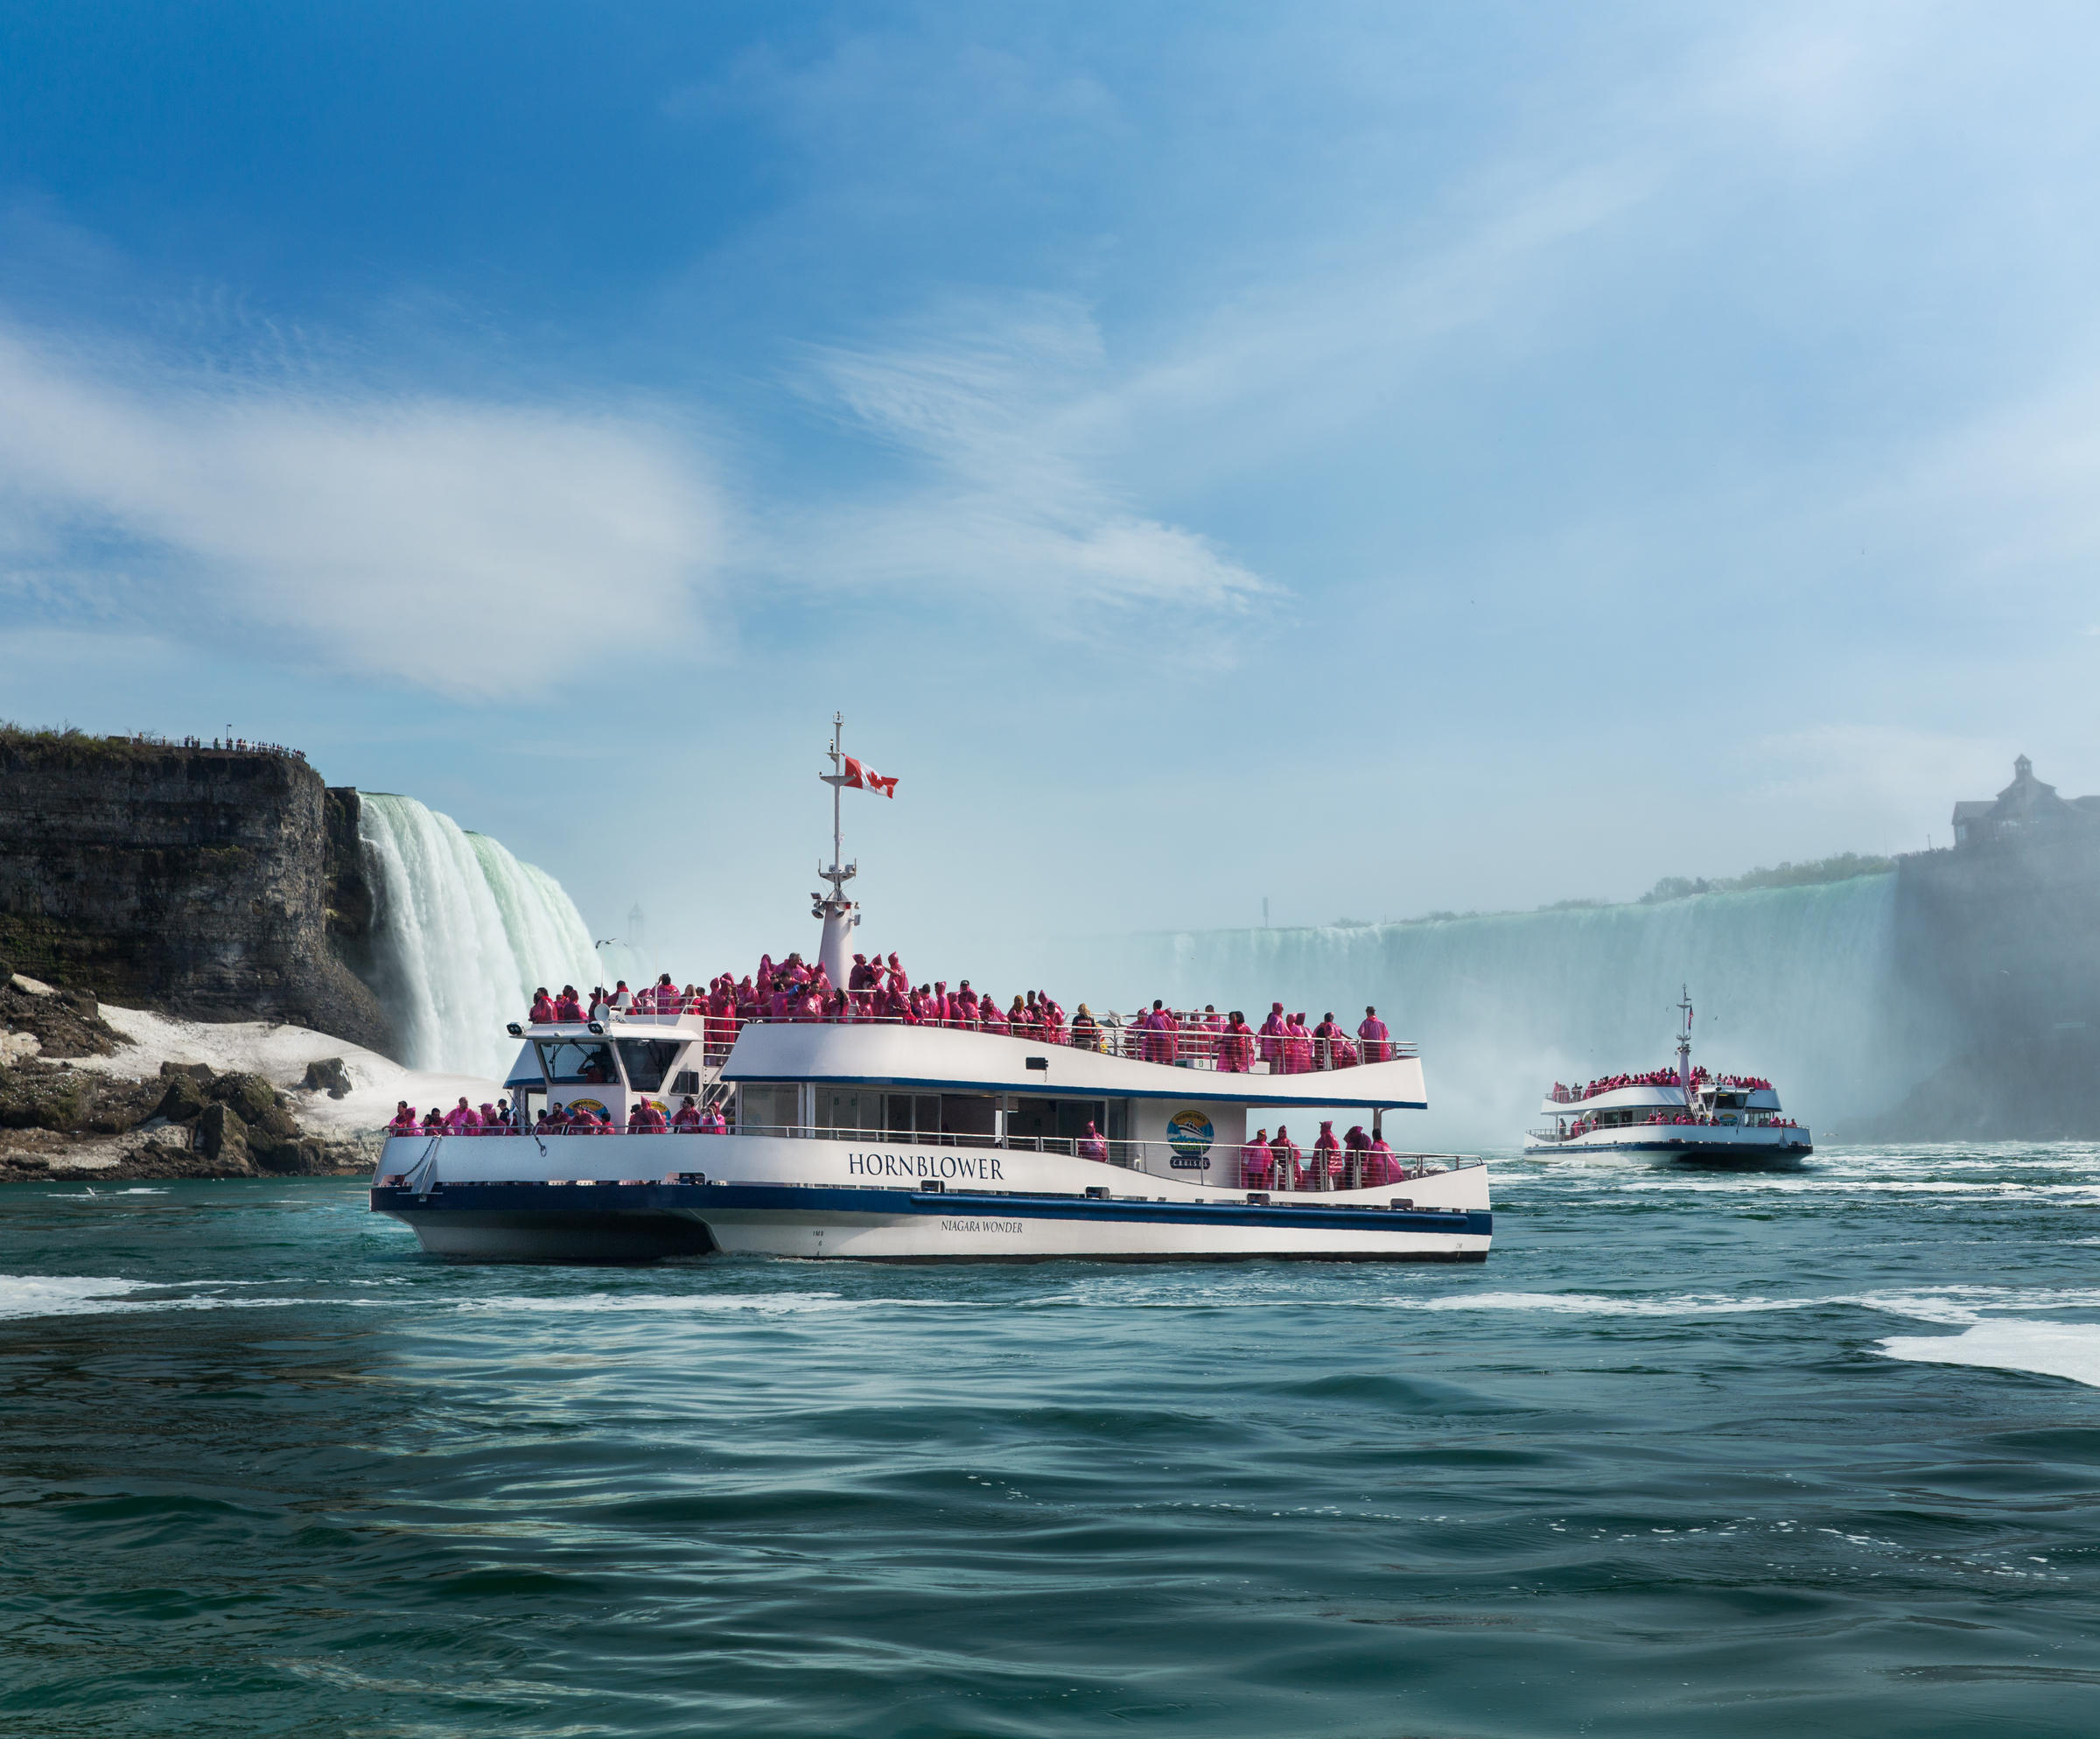 Niagara Falls Boat Excursions To Start Early